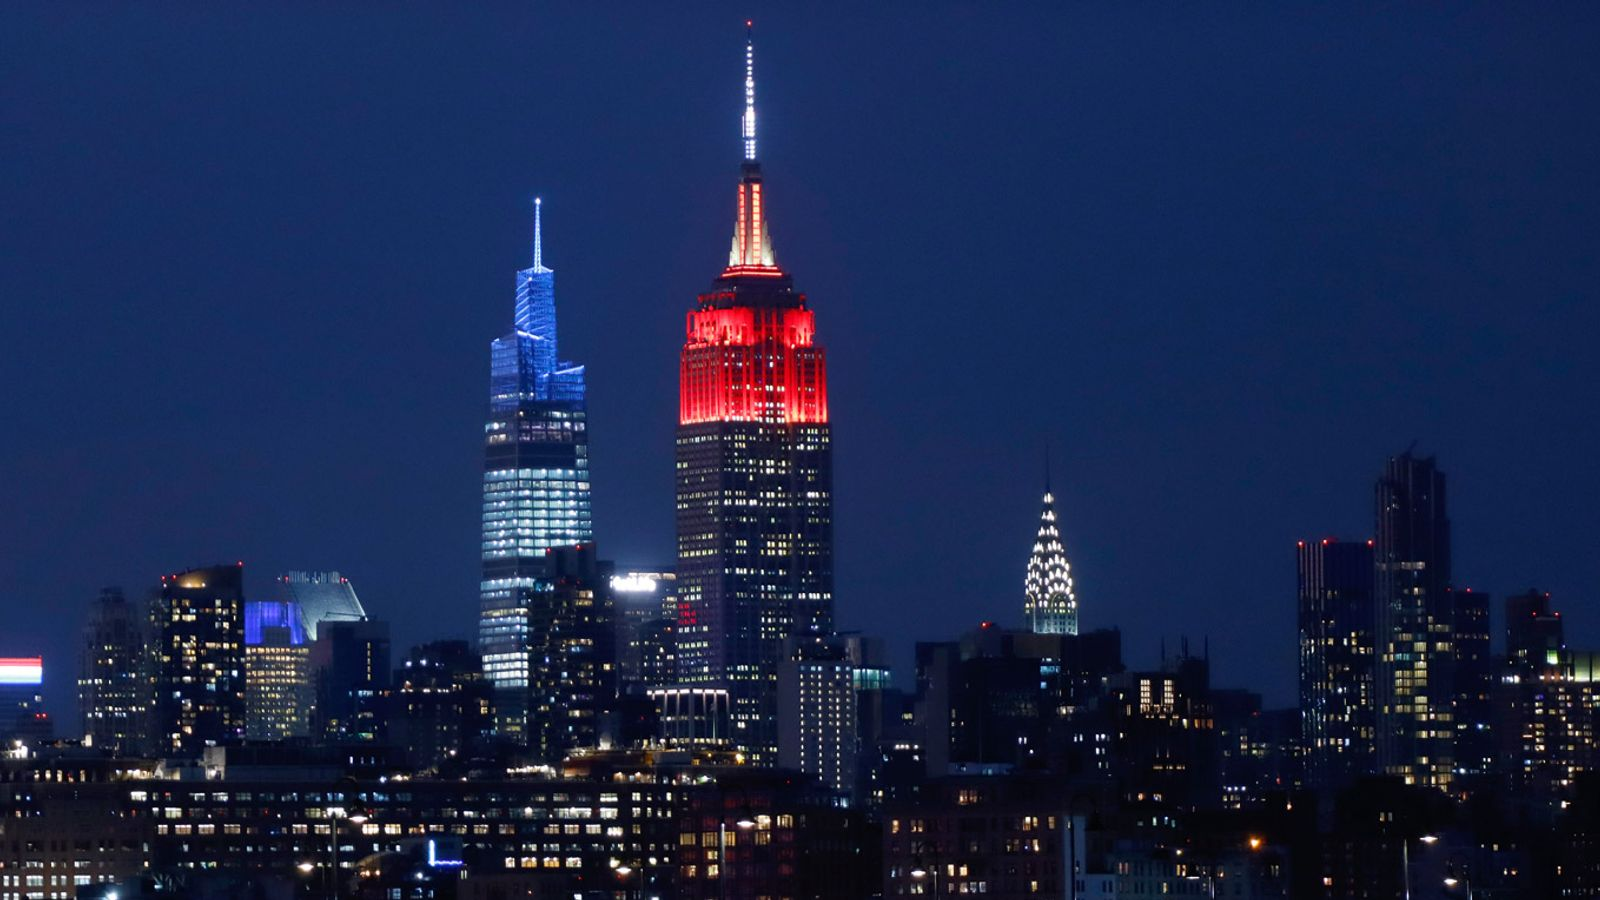 FC Bayern news: The Empire State Building lights up in red for FCB |  football news